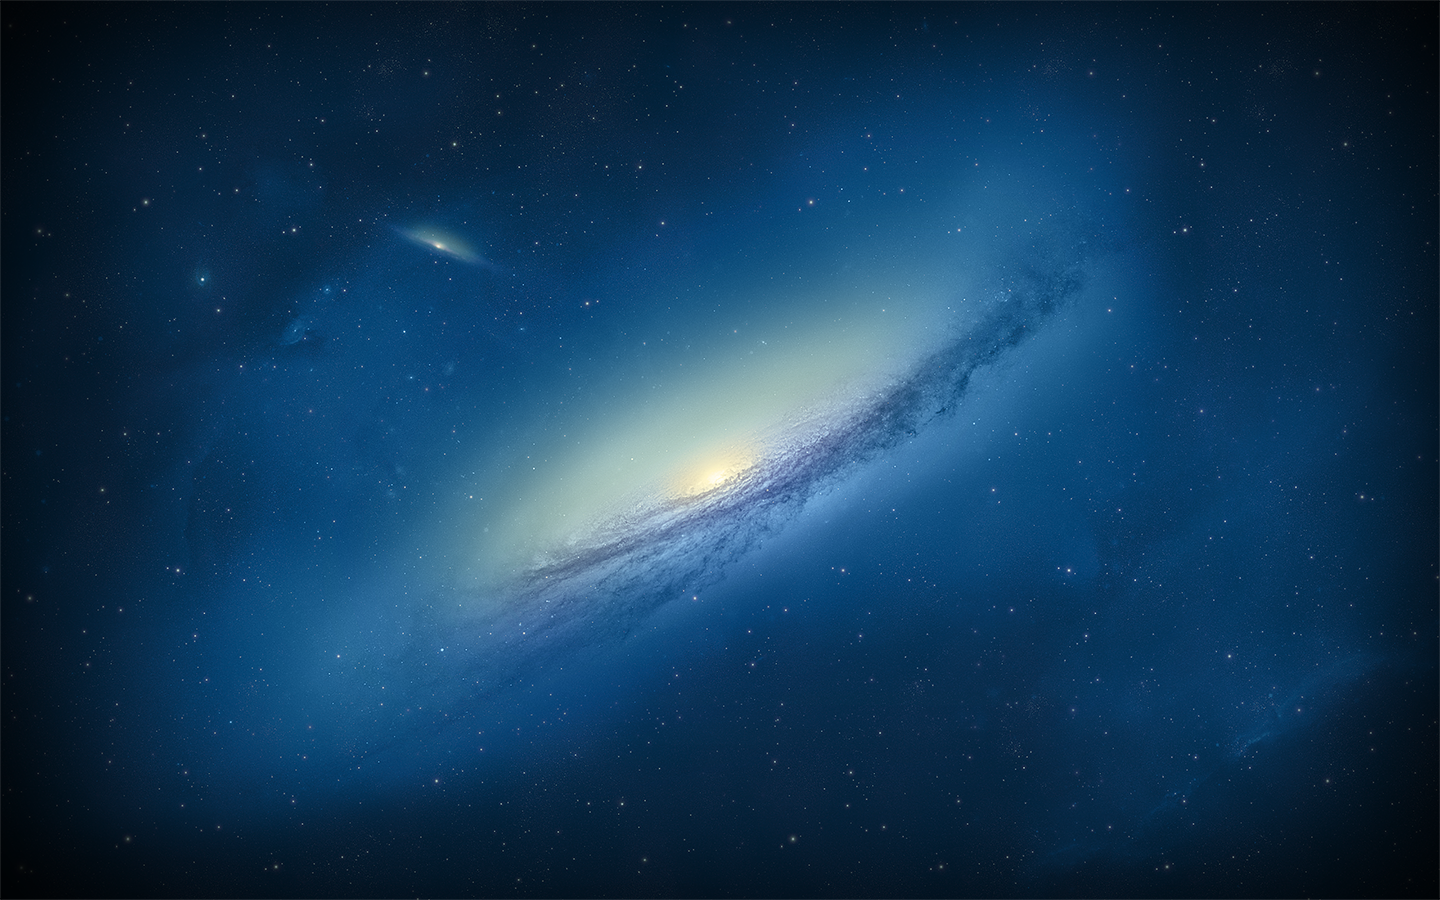 Galaxy Ngc 3190 By Javierocasio On Deviantart